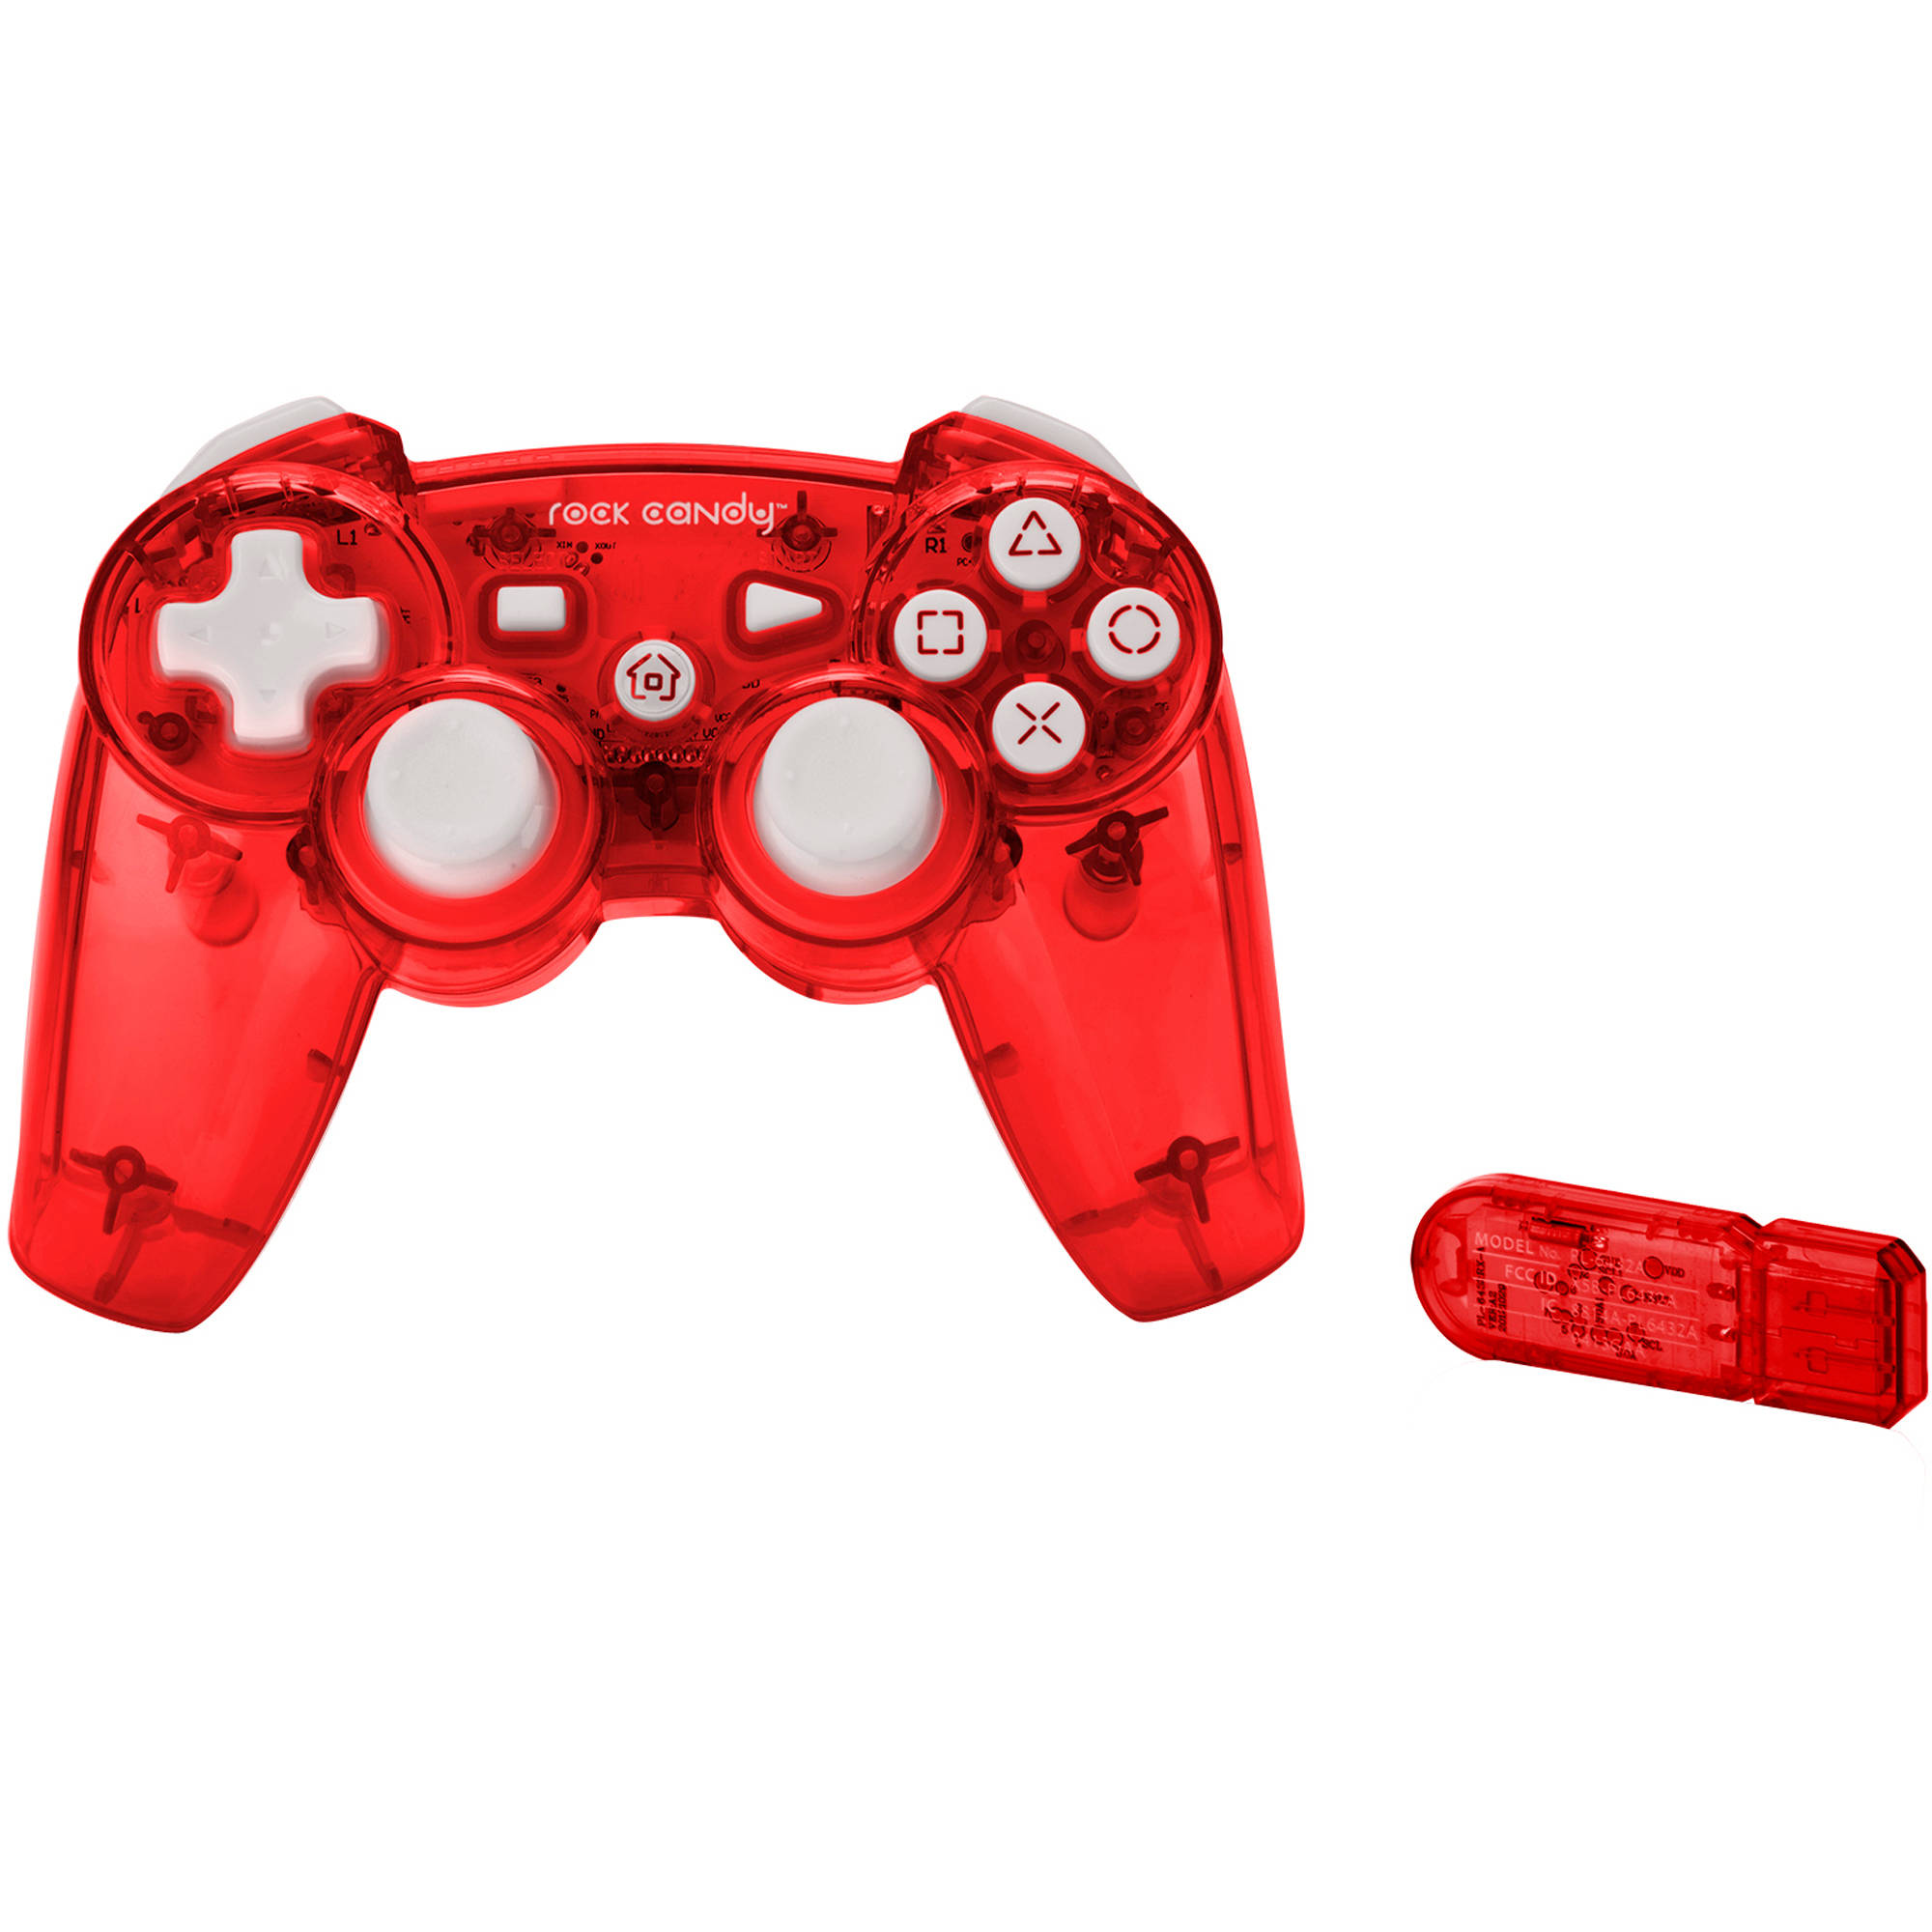 Rock Candy Wireless Controller, Red (PS3)